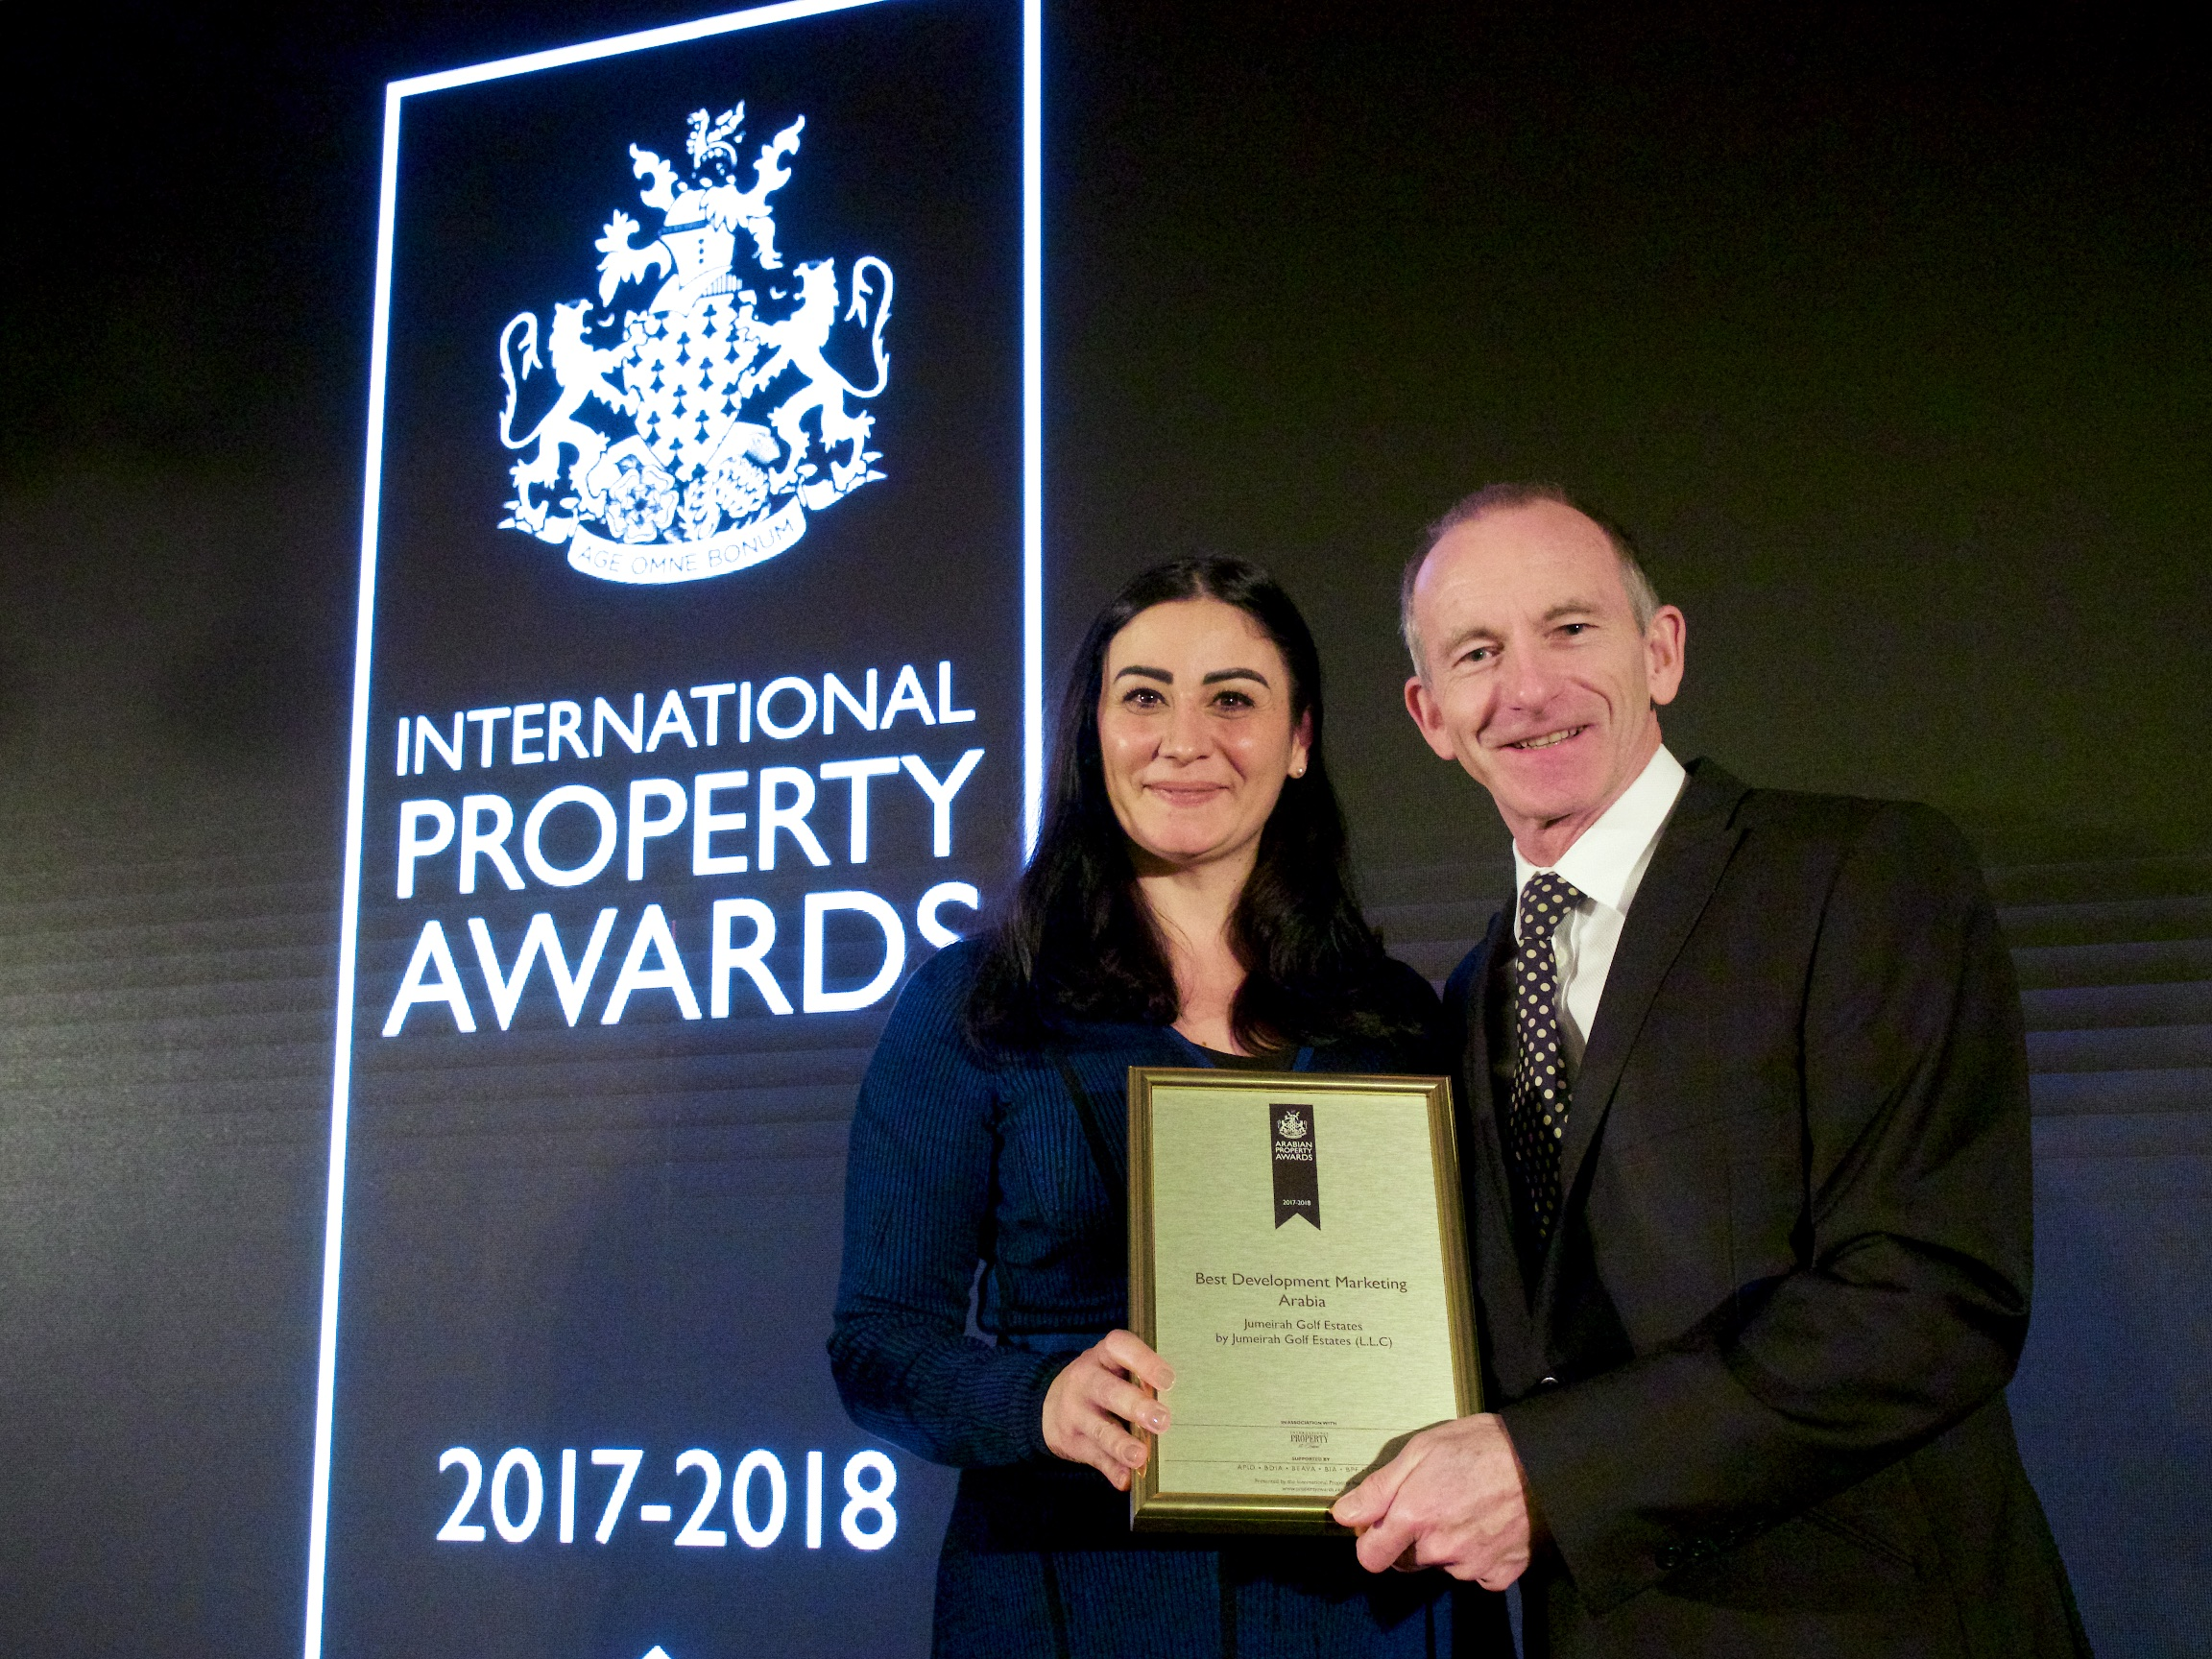 Jumeirah Golf Estates Wins International Property Award for Best International Development Marketing